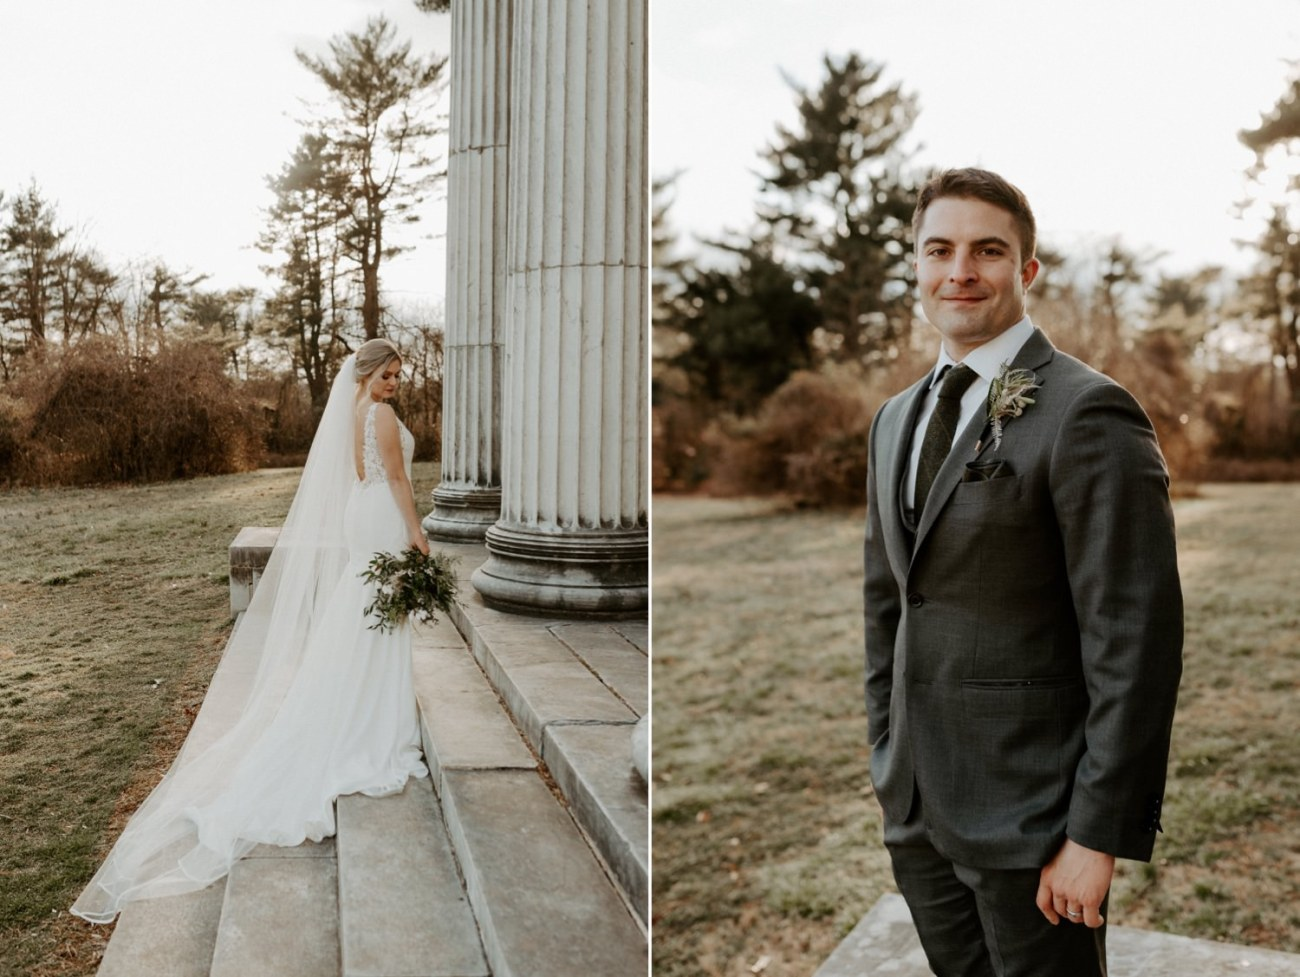 Princeton Battlefield Wedding Princeton University Elopement New Jersey Wedding Photographer Anais Possamai Photography 35